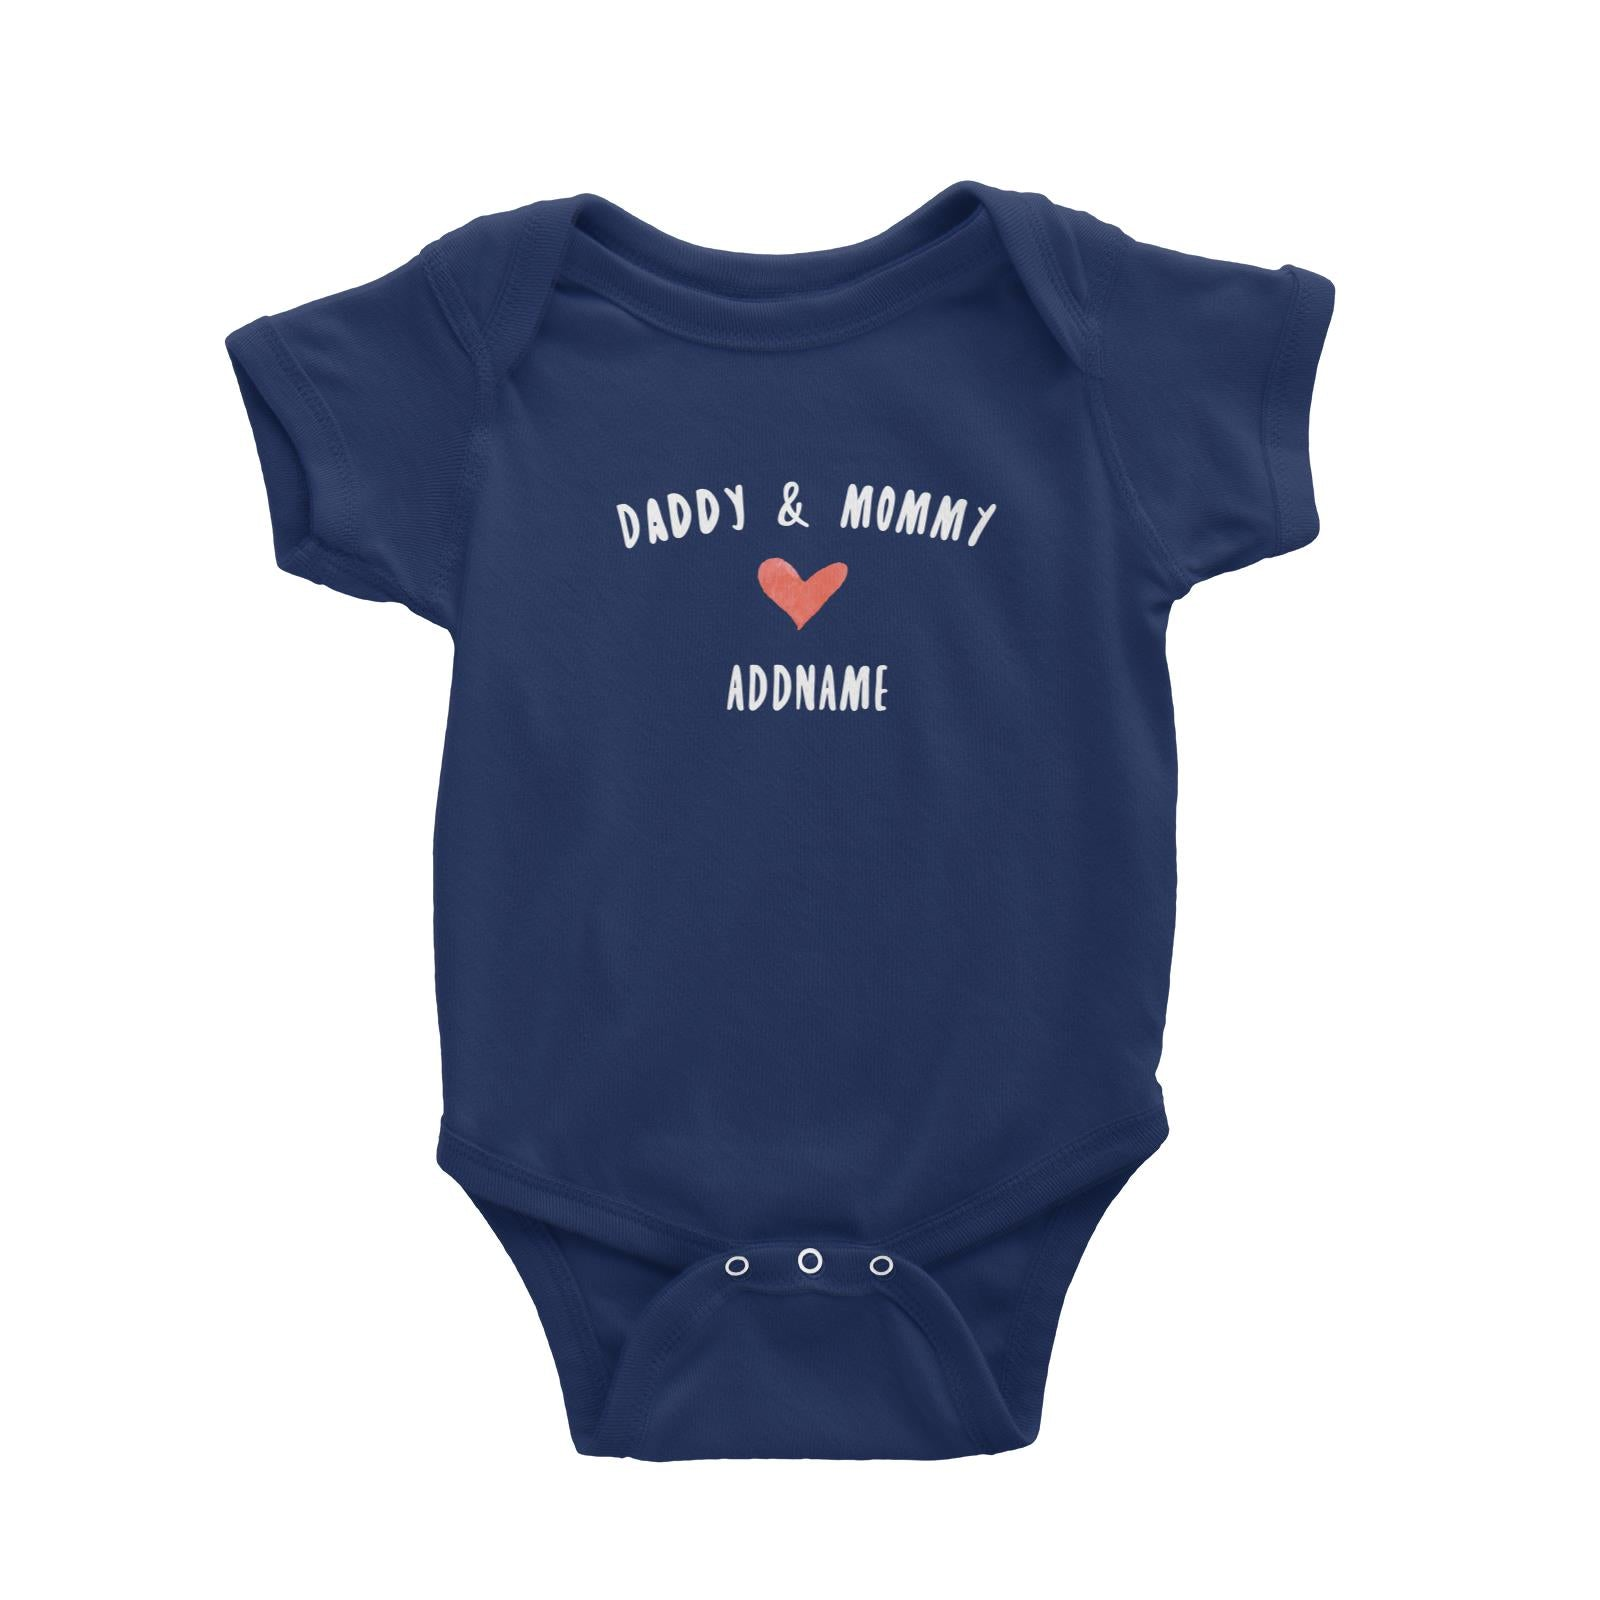 Daddy & Mommy Love Addname Baby Romper  Matching Family Personalizable Designs